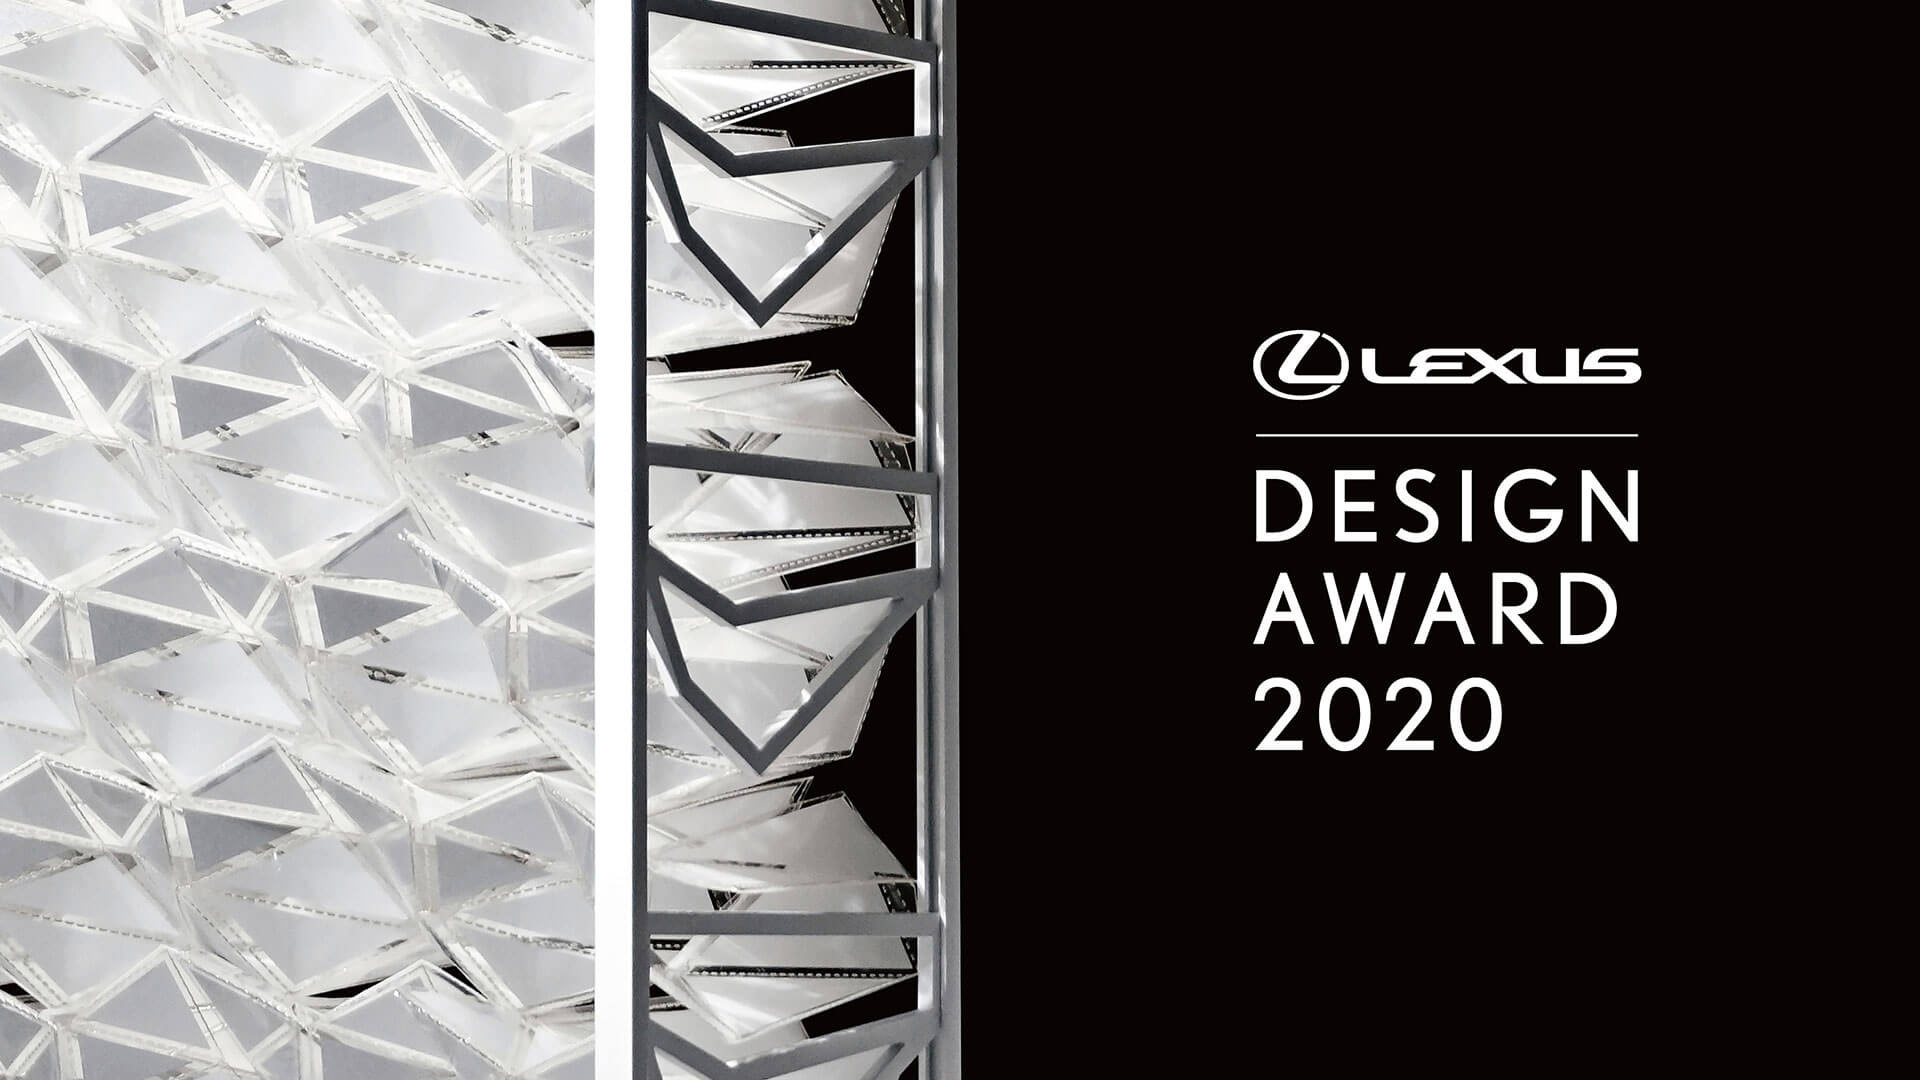 2020 005 Lexus Design Awards 2020 1920x1080 hero